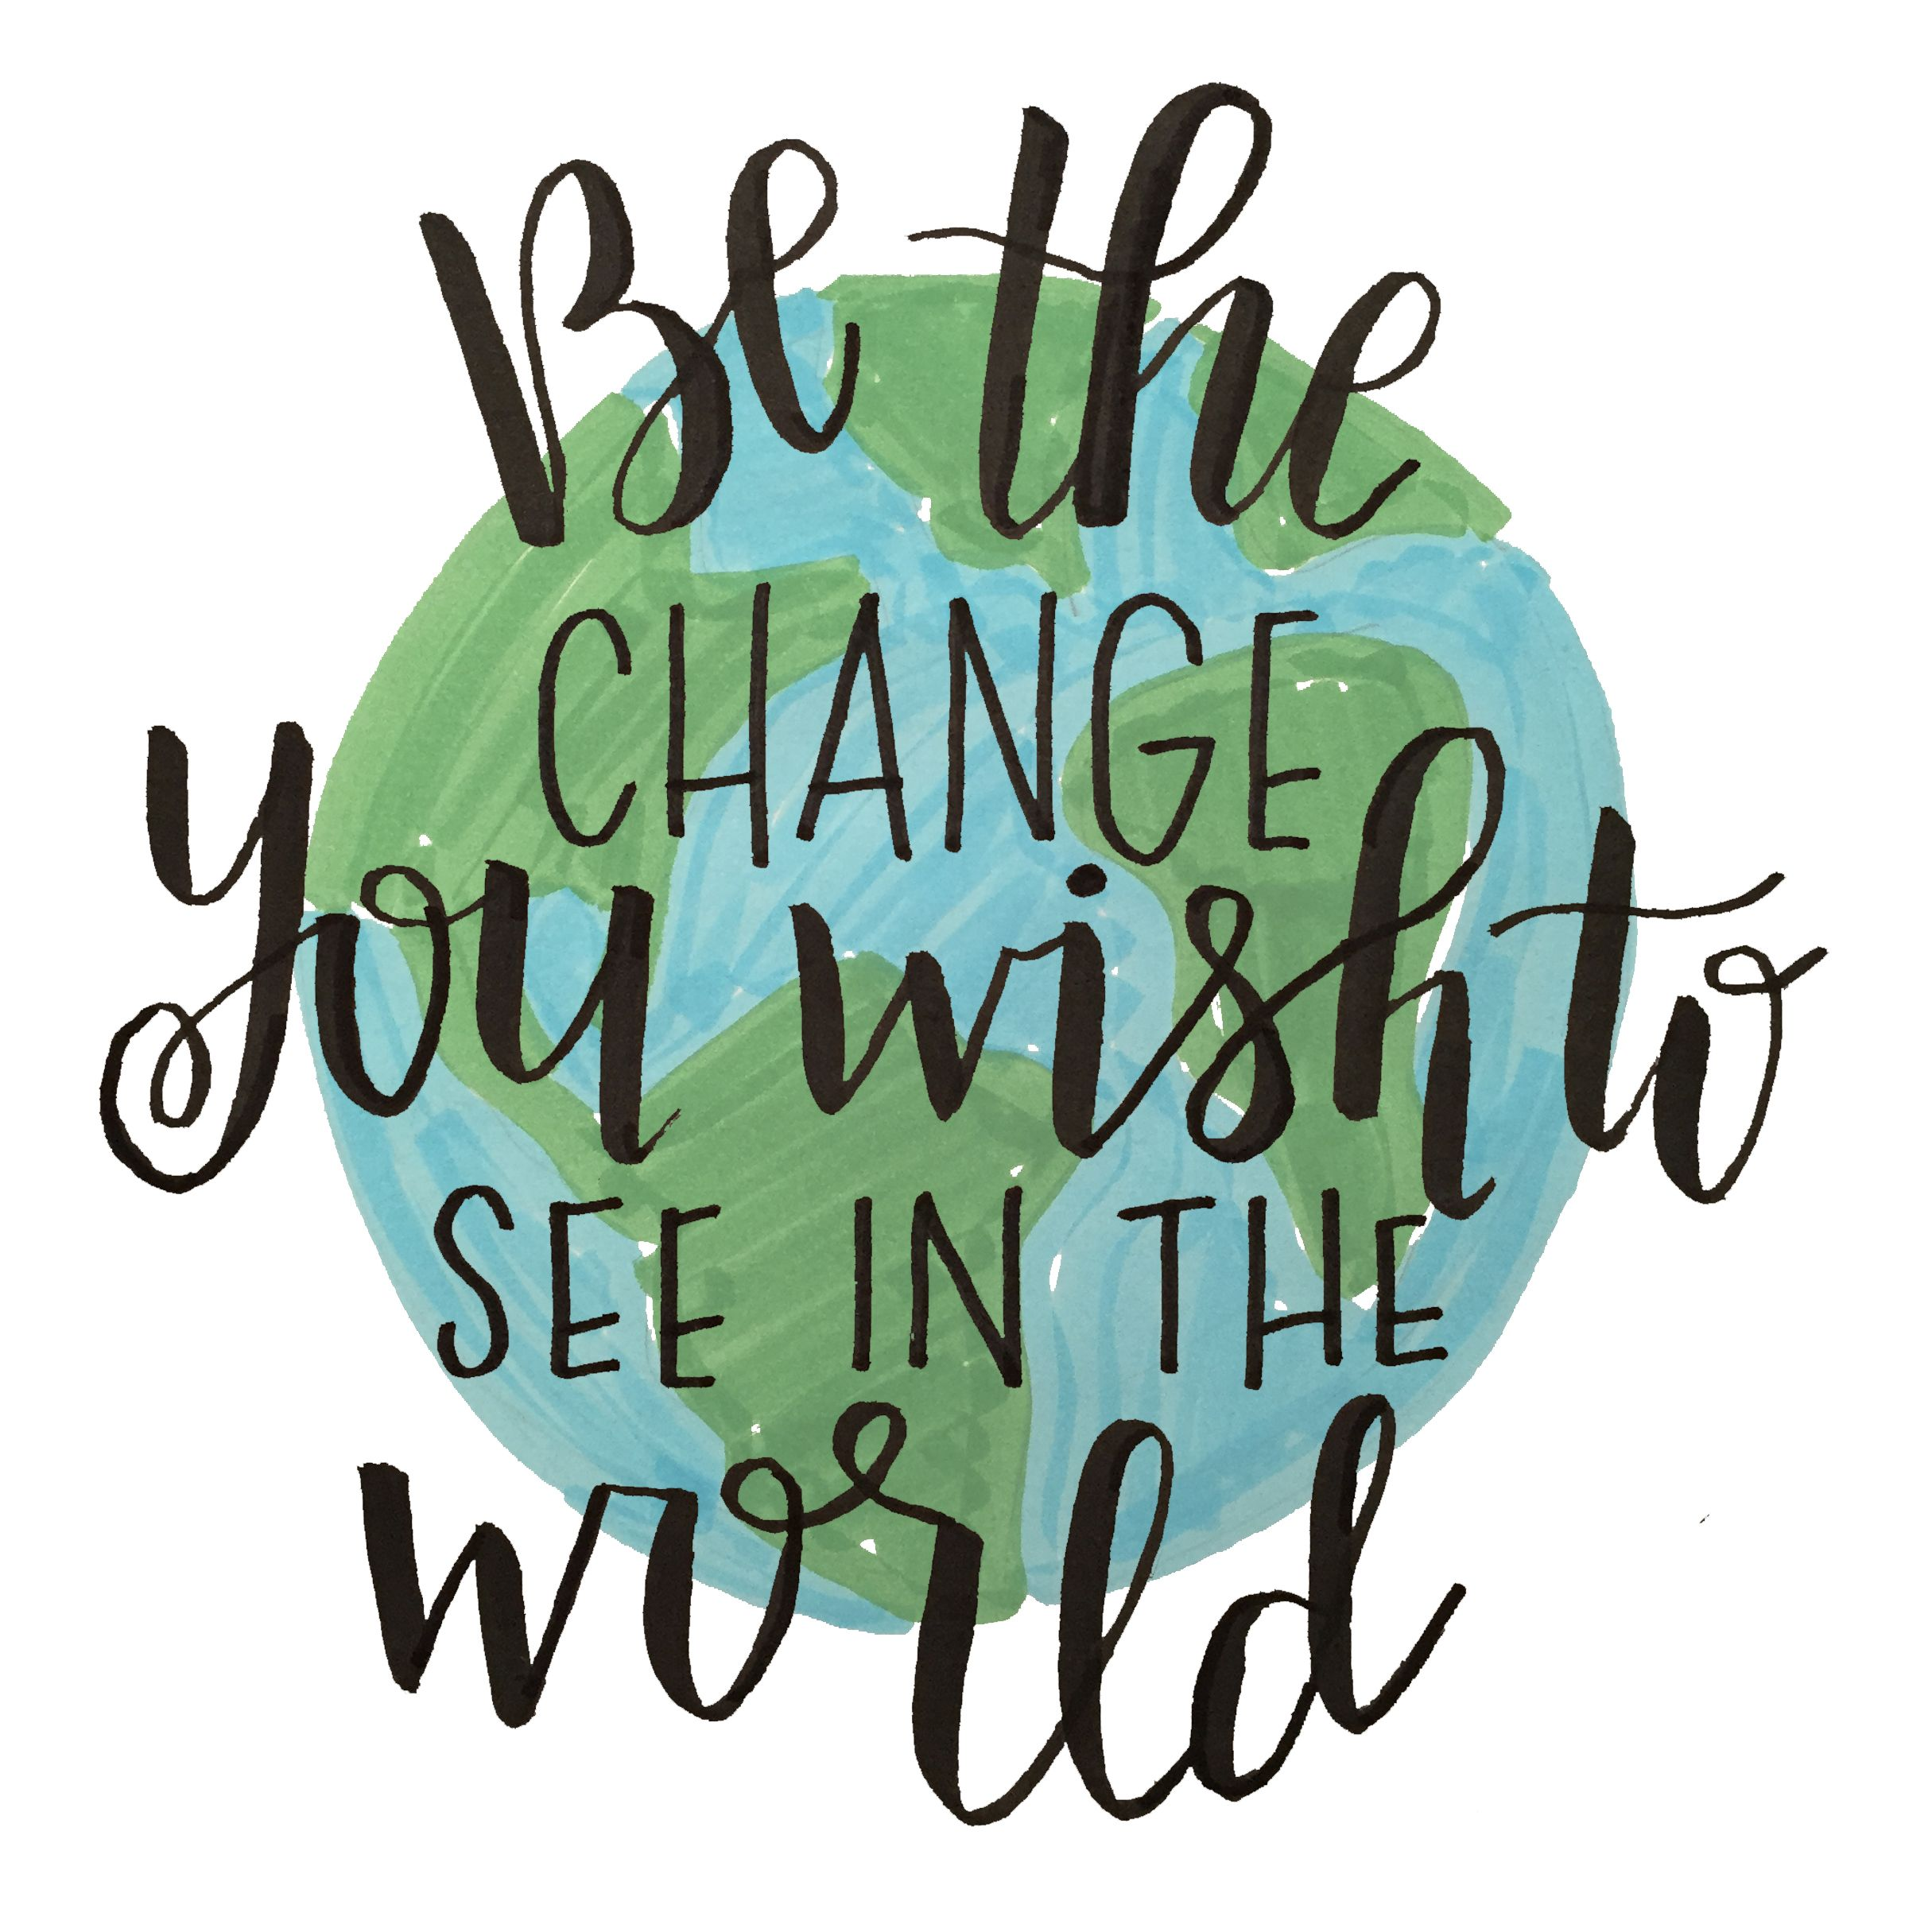 Photo of Be the Change You Wish To See in the World | Gandhi | Sqaure Printable | Green and Blue World with Calligraphy Print for Home Decor